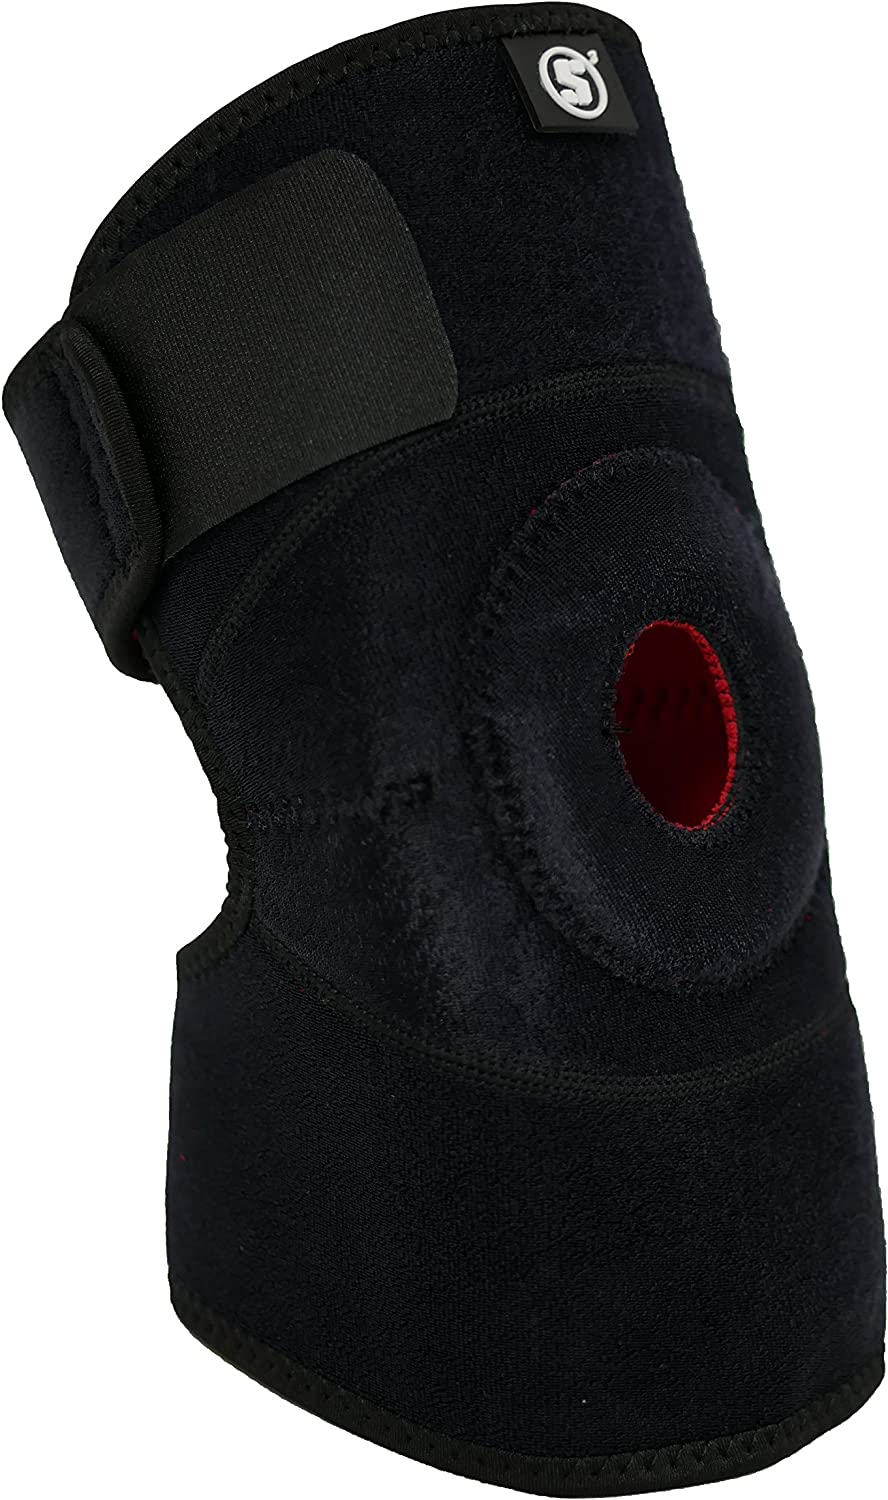 Adjustable Knee Support New Shipping Free Limited price sale Brace Joint Pain Relief Tendonitis Sp